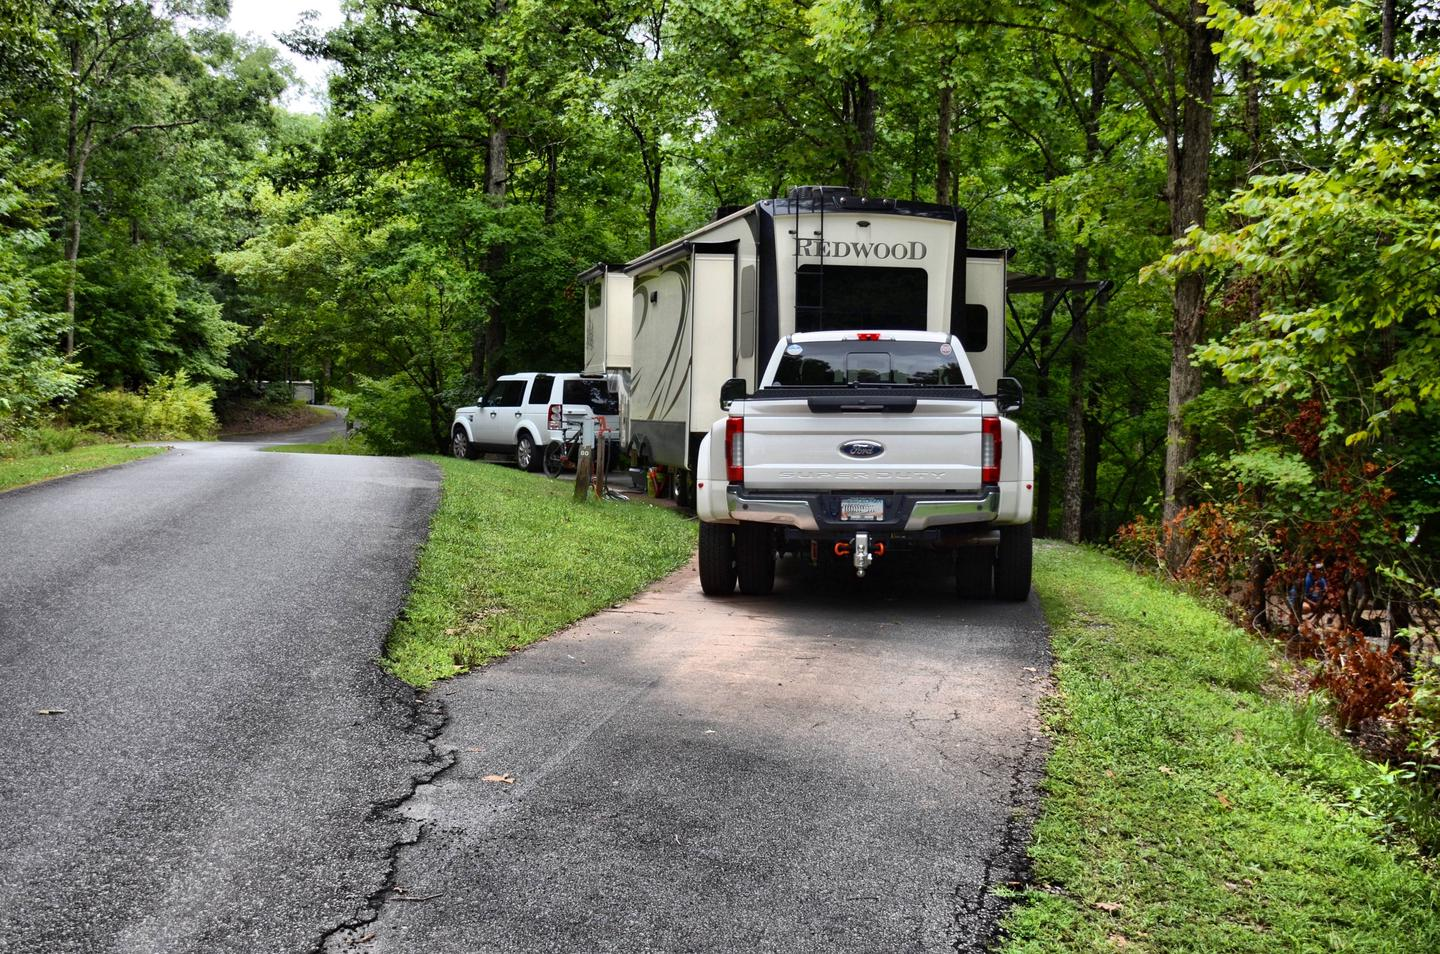 Pull-thru entrance, utilities clearance.McKinney Campground, campsite 80.